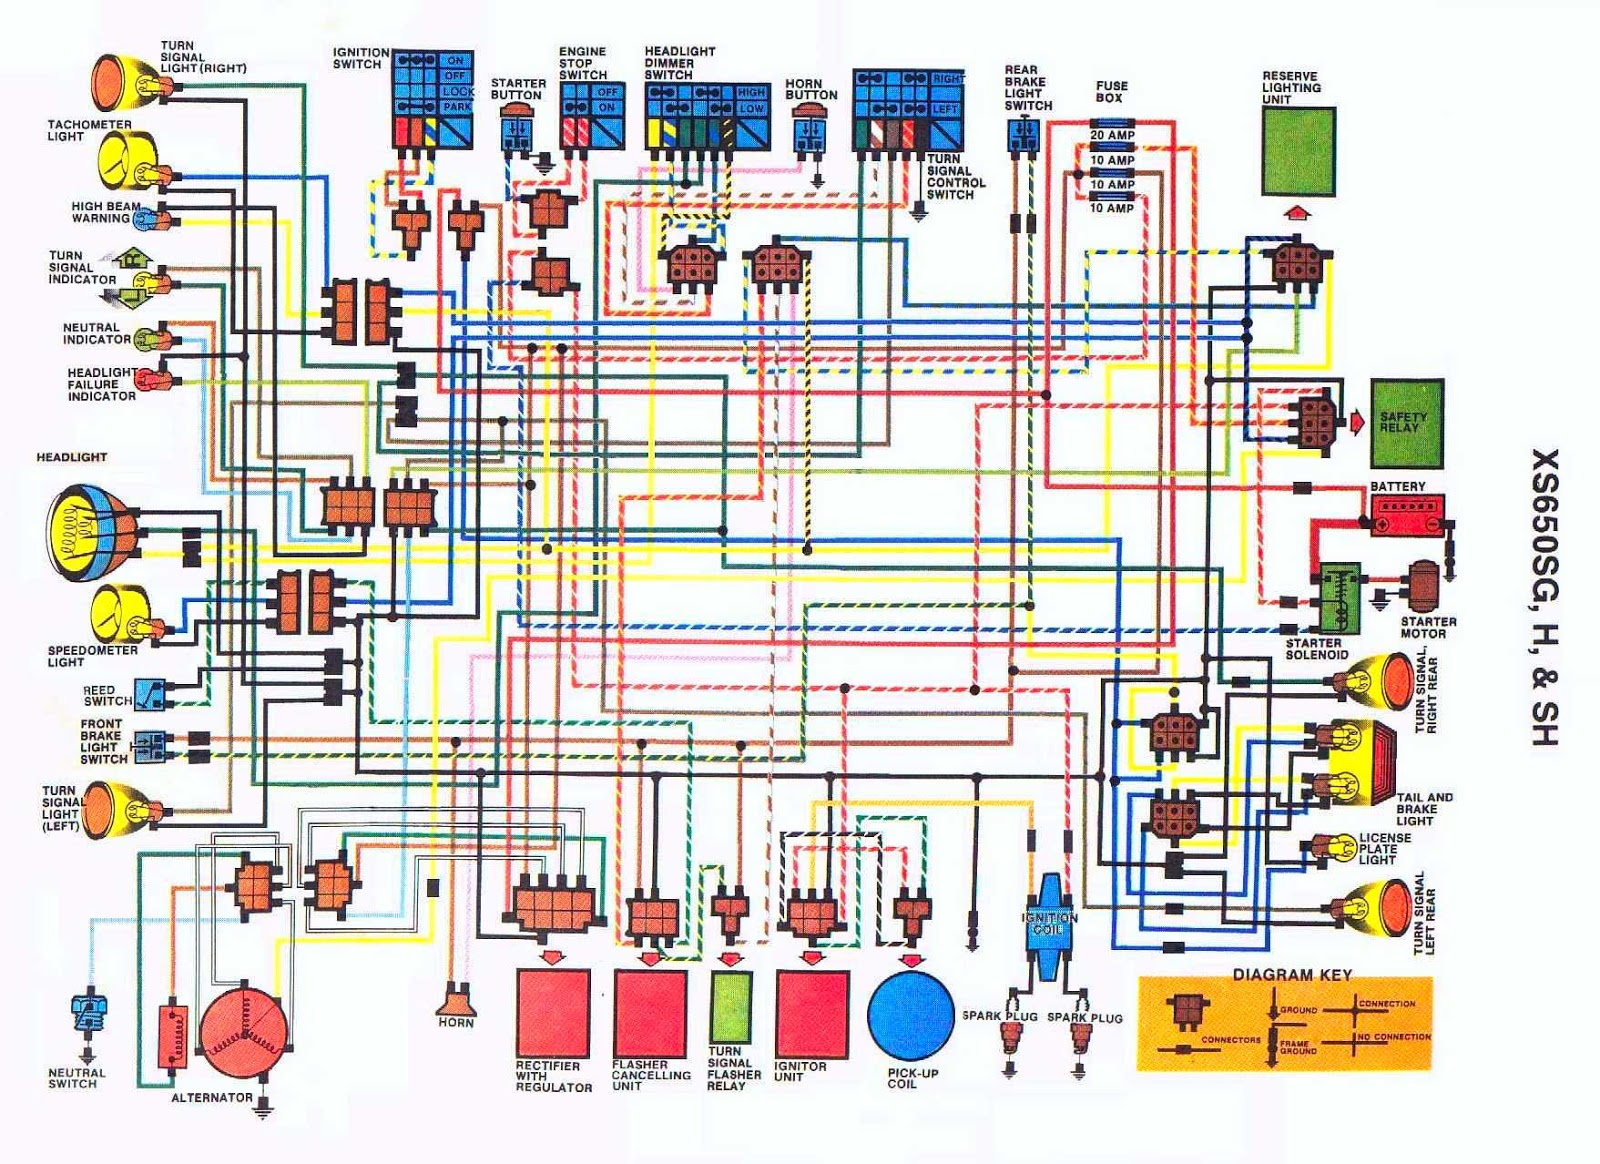 Xs650 Chopper Wiring Harness - Toyota Electrical Wiring Diagram Free  Picture for Wiring Diagram Schematics | 1980 Xs650 Cdi Wiring Diagram |  | Wiring Diagram Schematics